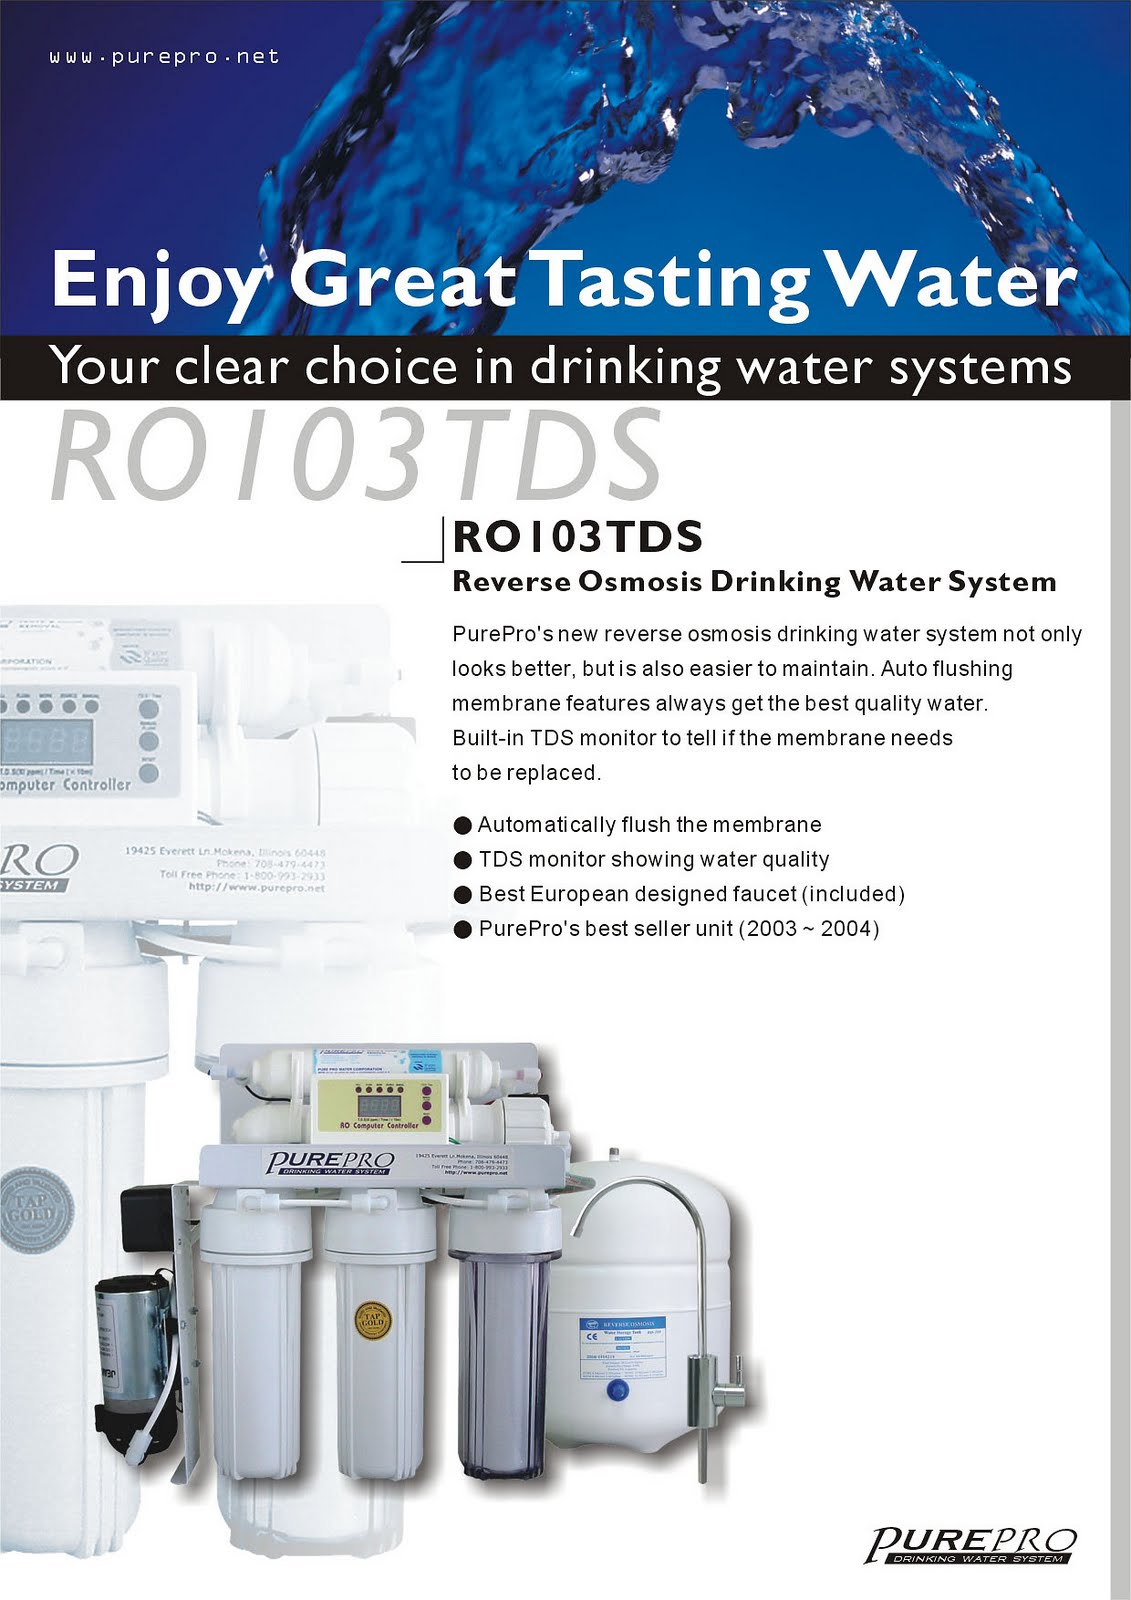 PurePro® RO103TDS Reverse Osmosis Pure Water Filtration System